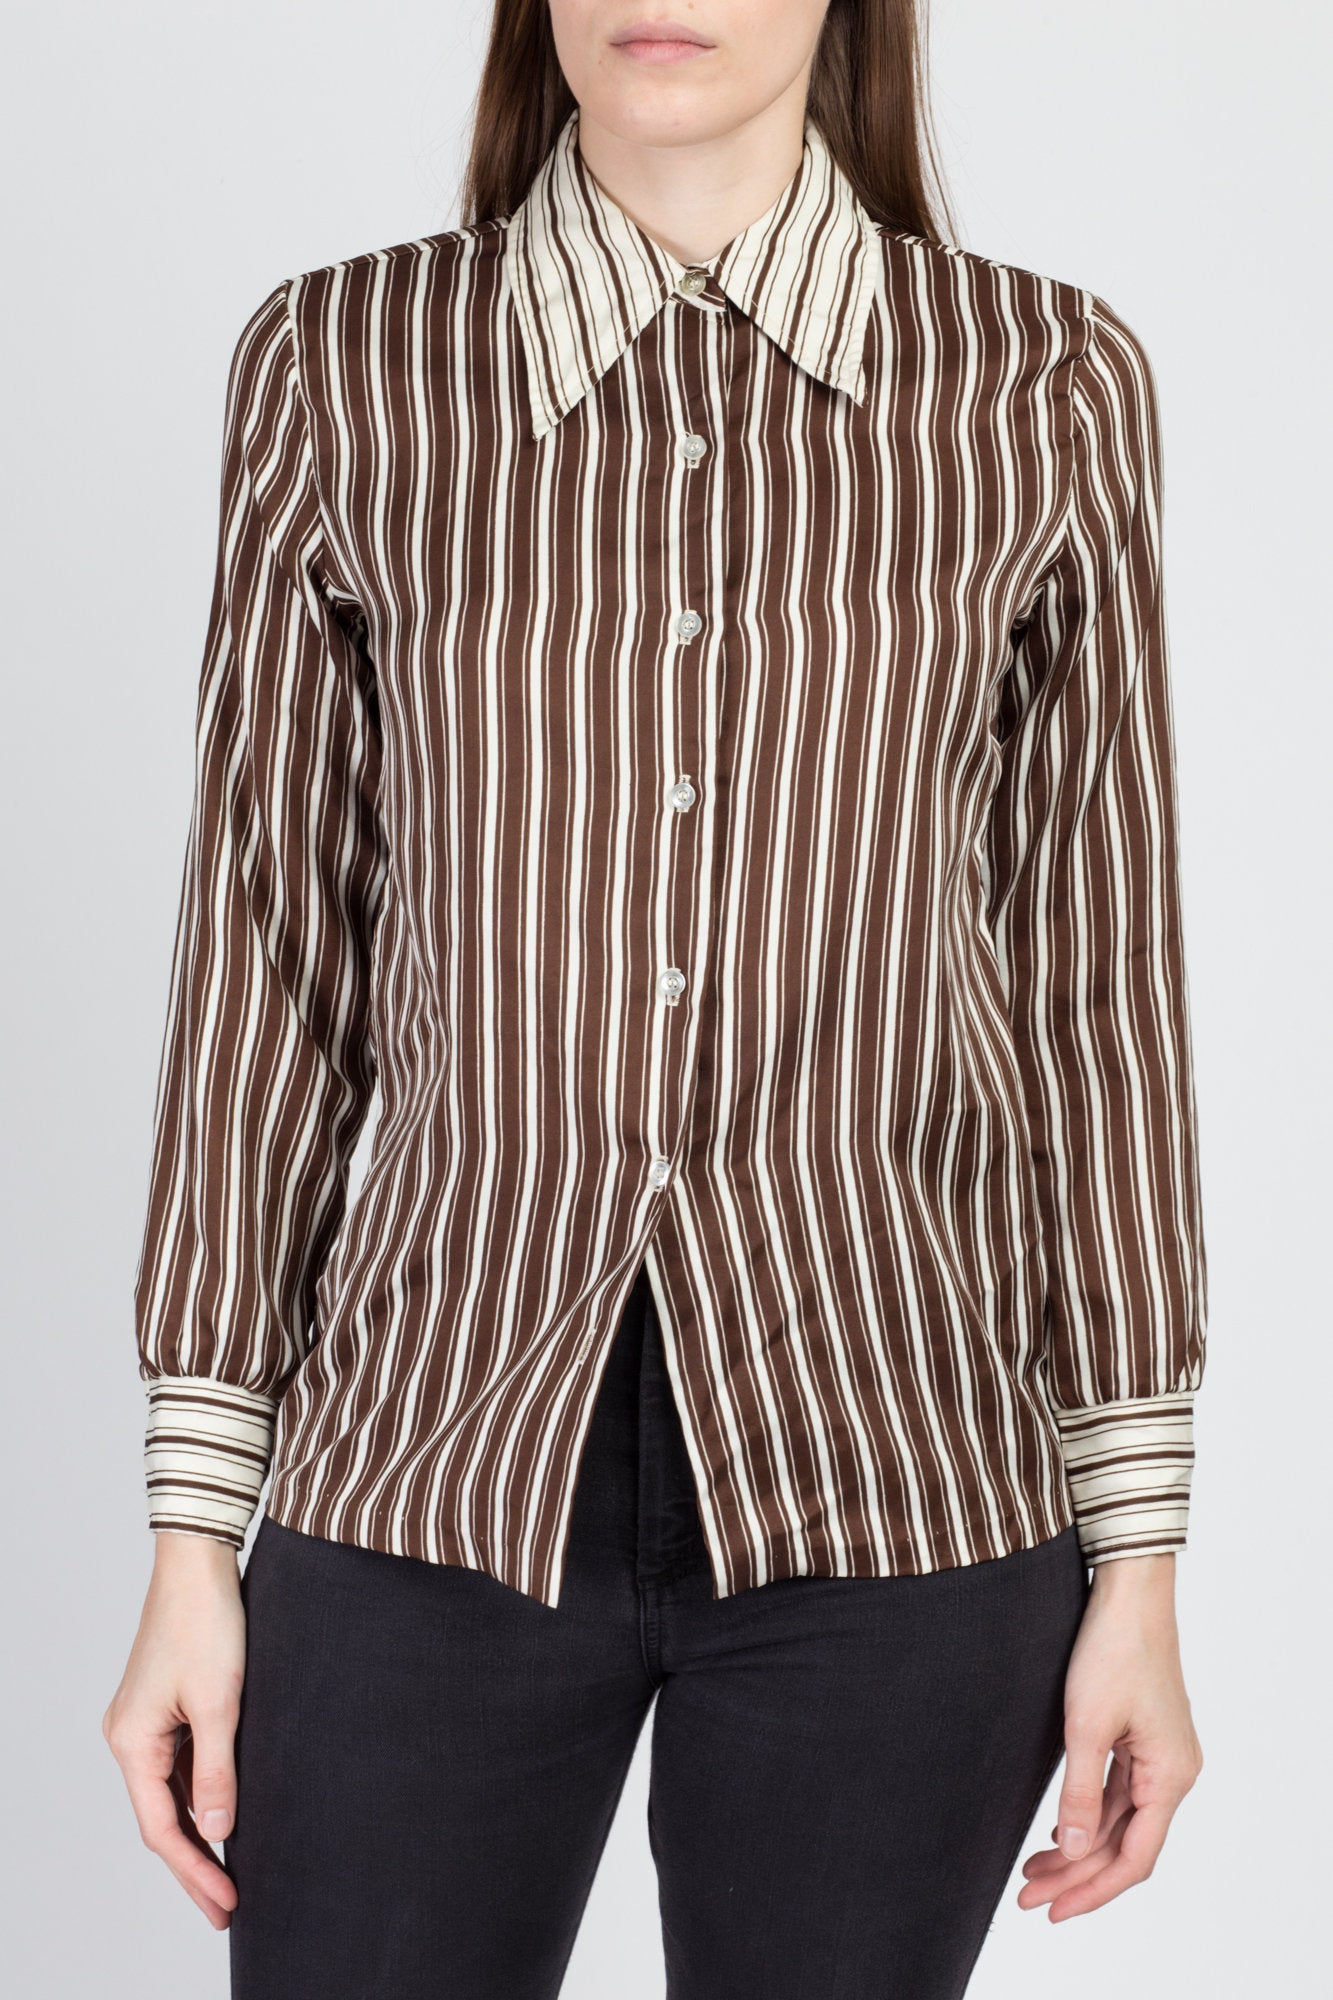 70s Contrast Striped Button Up Top - Small